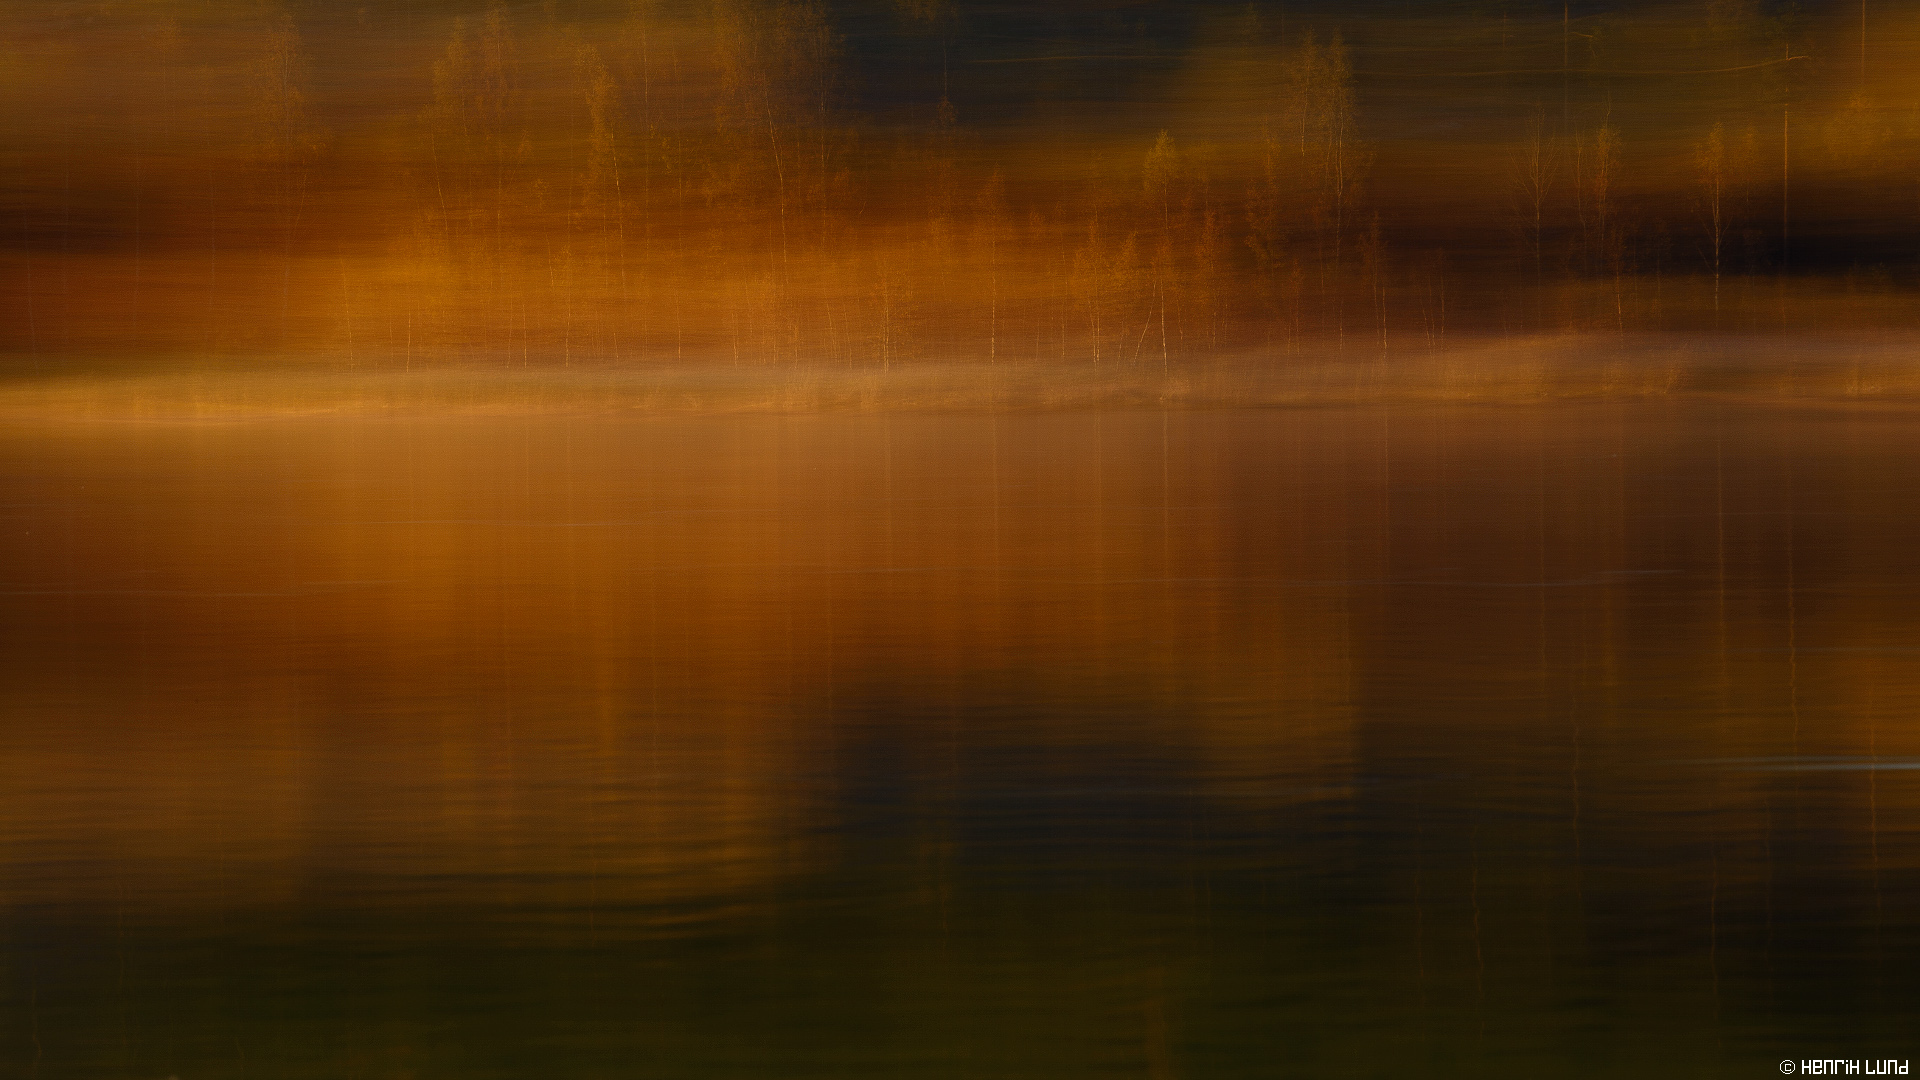 Panning autumn sunset colored trees. Lappträsk, Finland, October 2015.